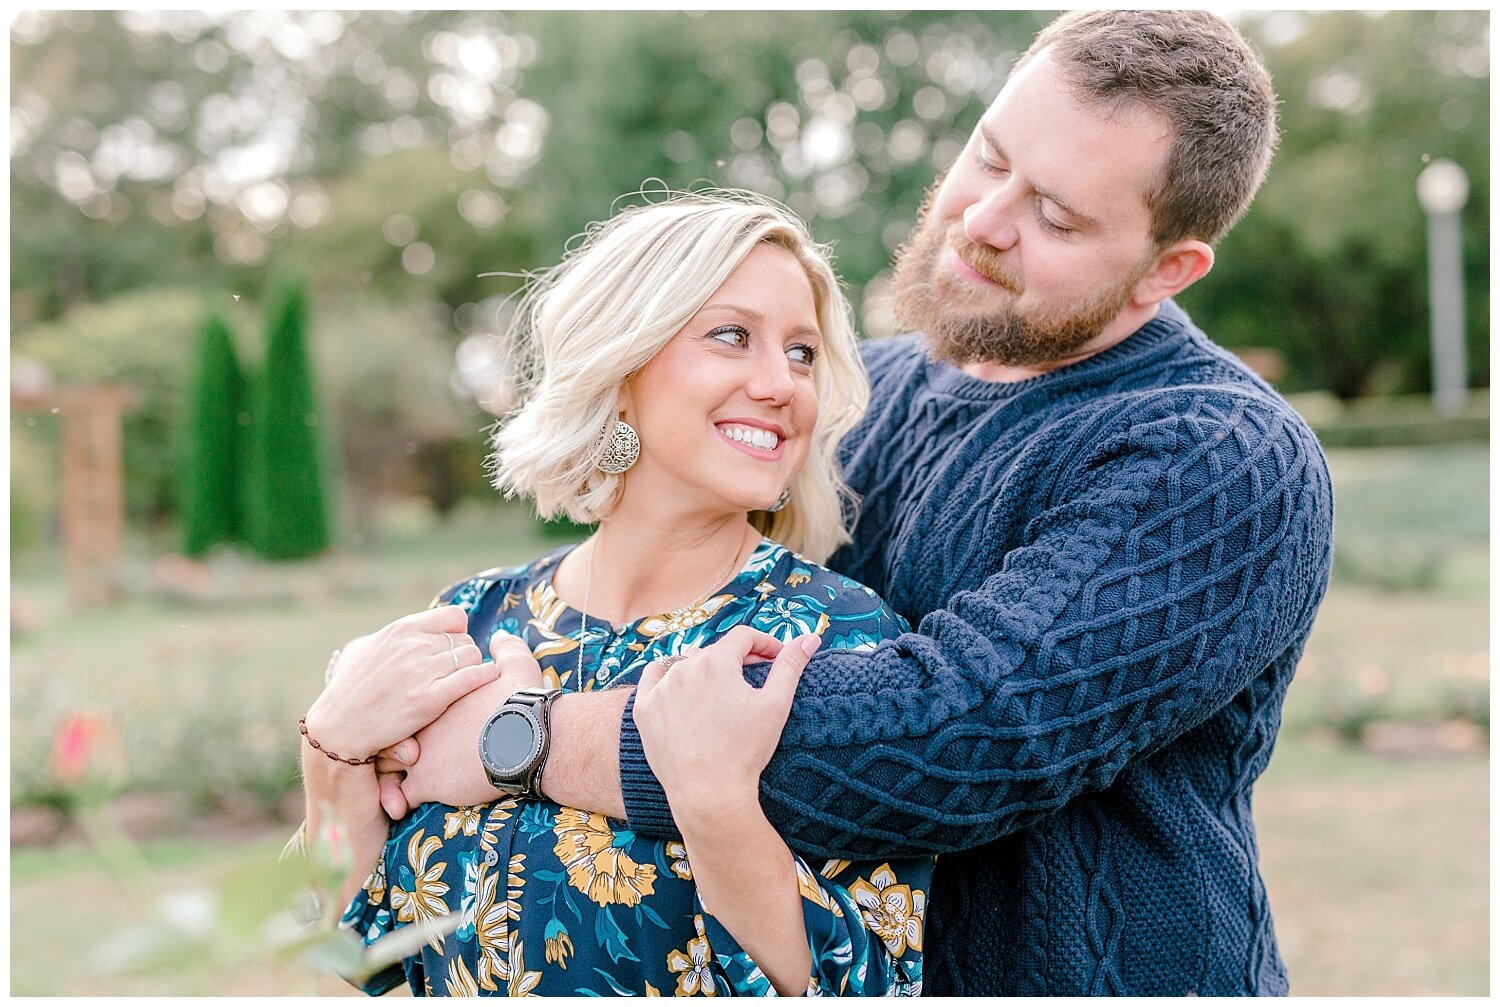 Allentown rose garden sunset engagement session with a tandem bike by lehigh valley pennsylvania based wedding and lifestyle photographer Jeannie Lytle of Lytle Photography Company_0002.jpg